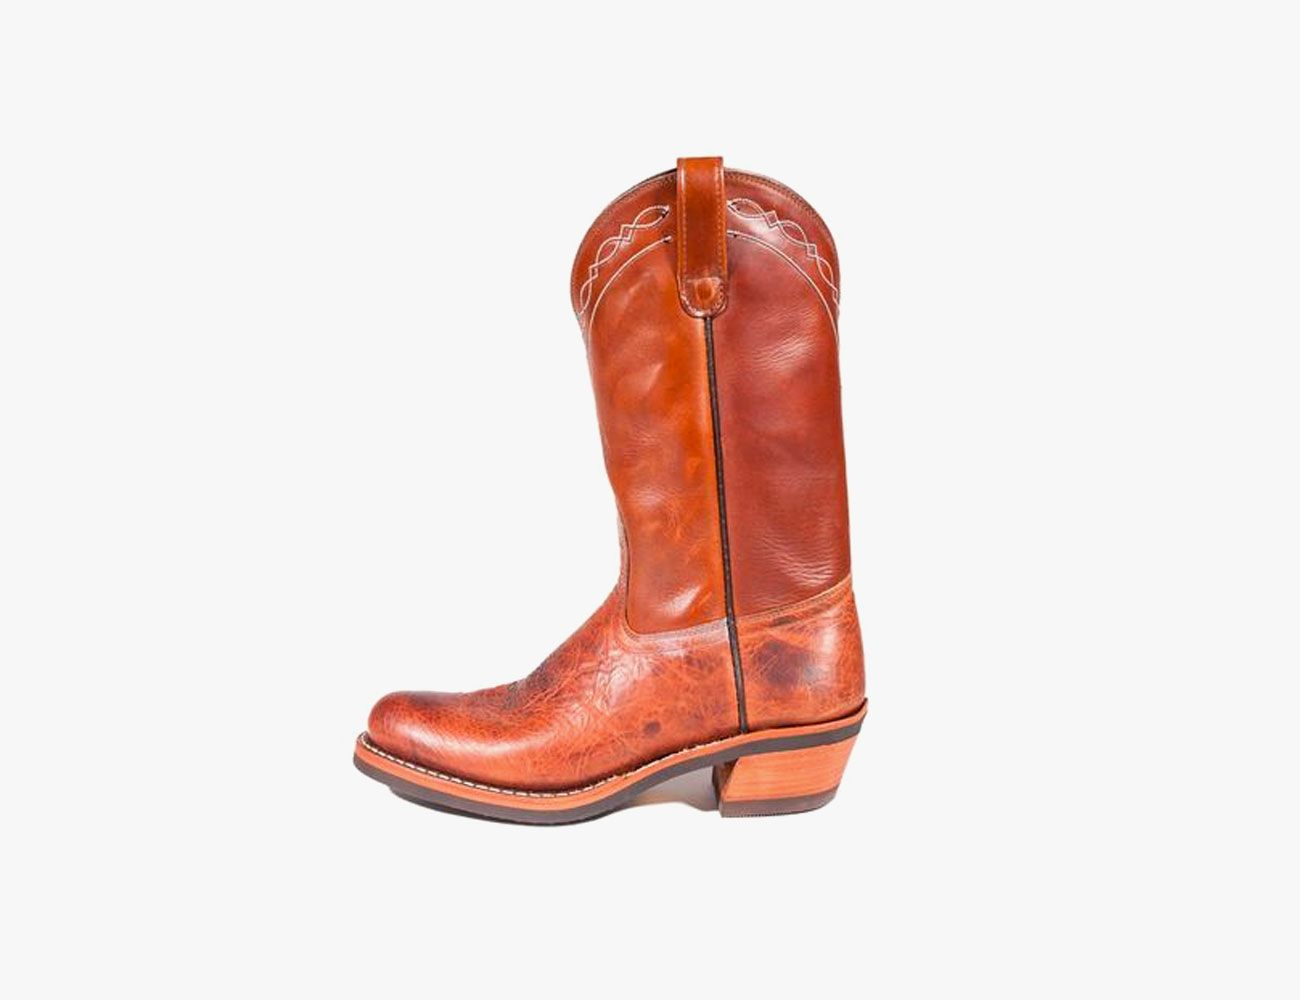 best affordable cowboy boots